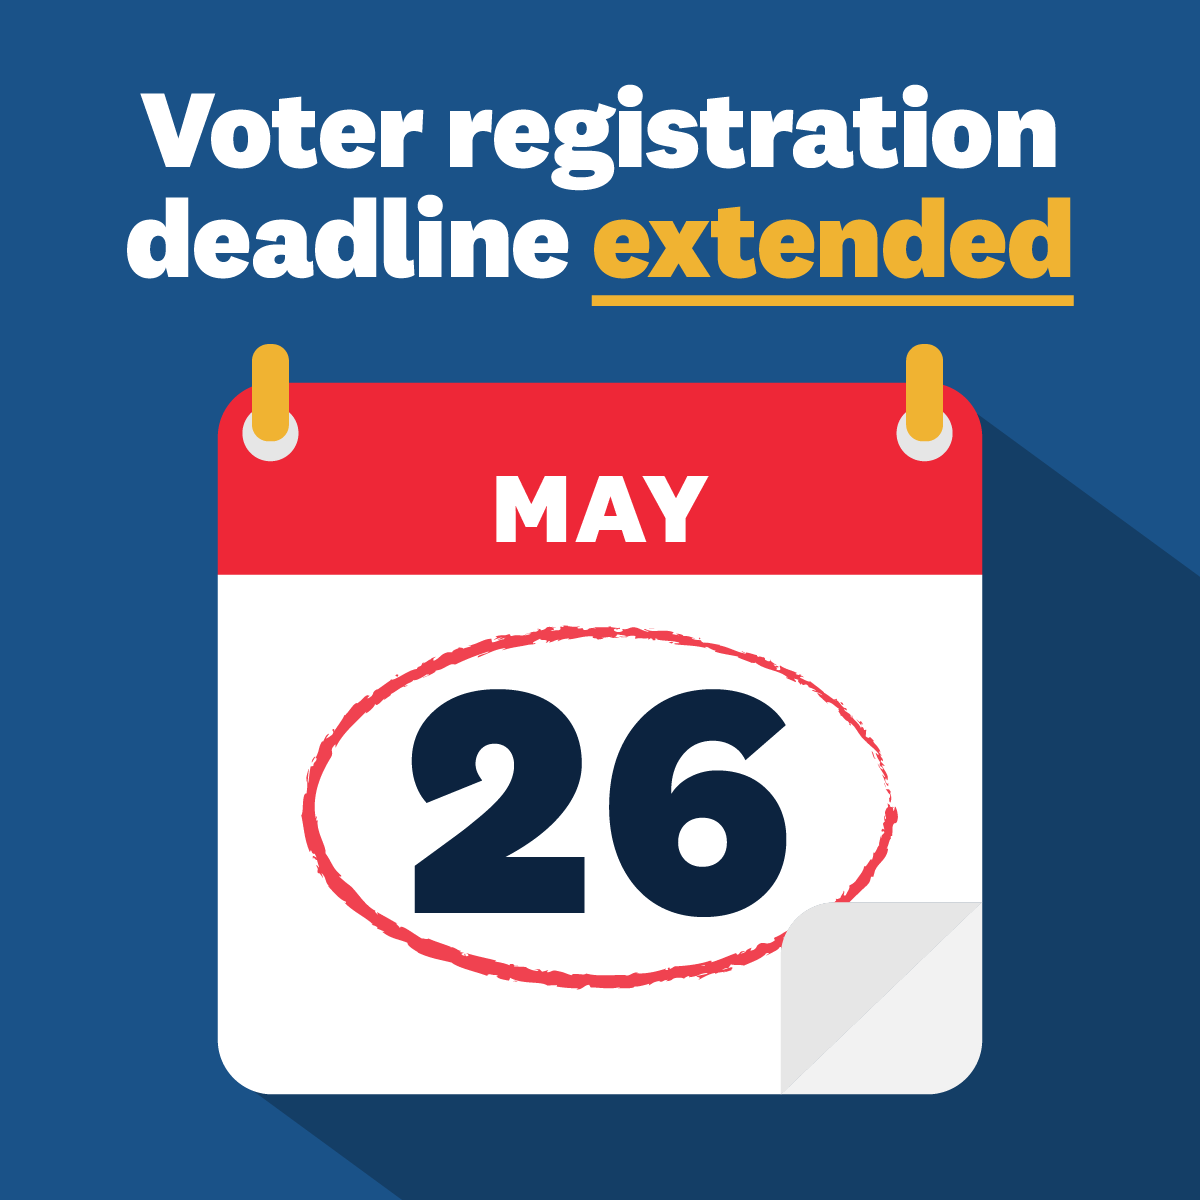 The deadline to register to vote in KY is May 26 at 4 p.m. The best time to register is right when you read this. If you're already registered, make sure your address is up to date.  🗳️ Register to vote:   ☑️ Check your address: